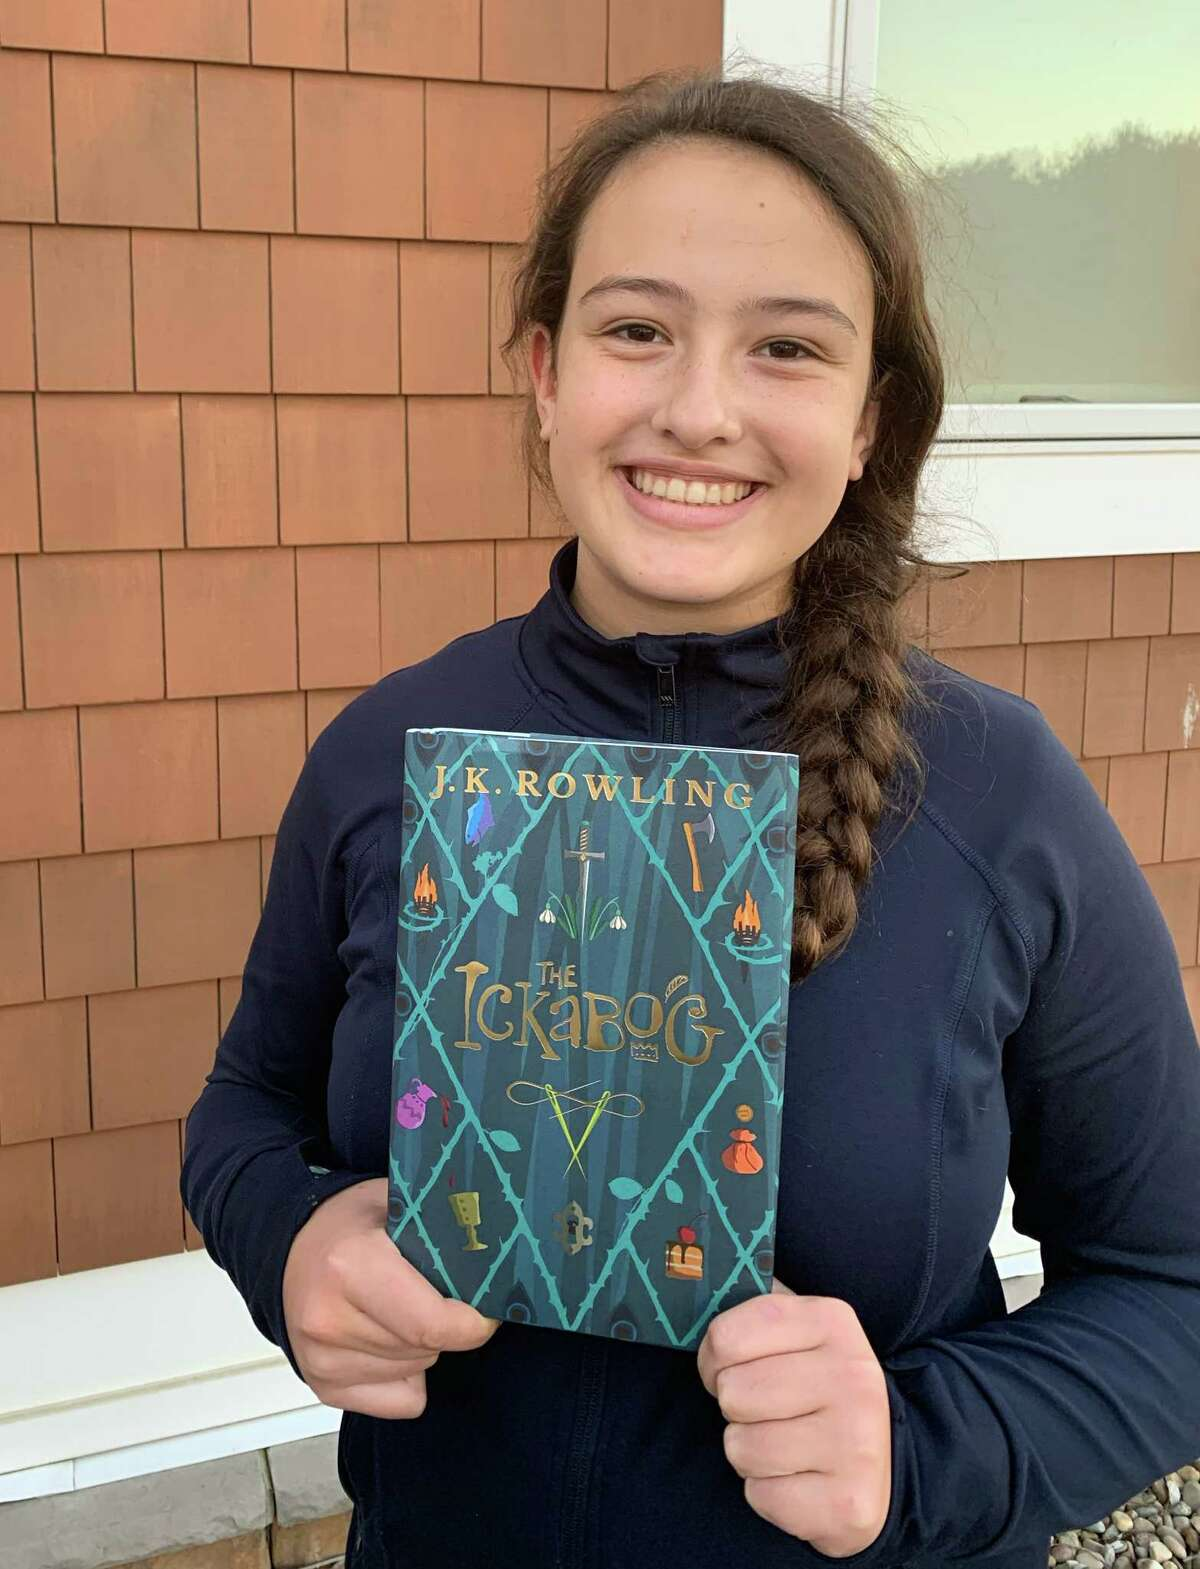 Isla Besha, 12, of Altamont holds a signed copy of J.K. Rowling?•s new book ?'The Ickabog.?